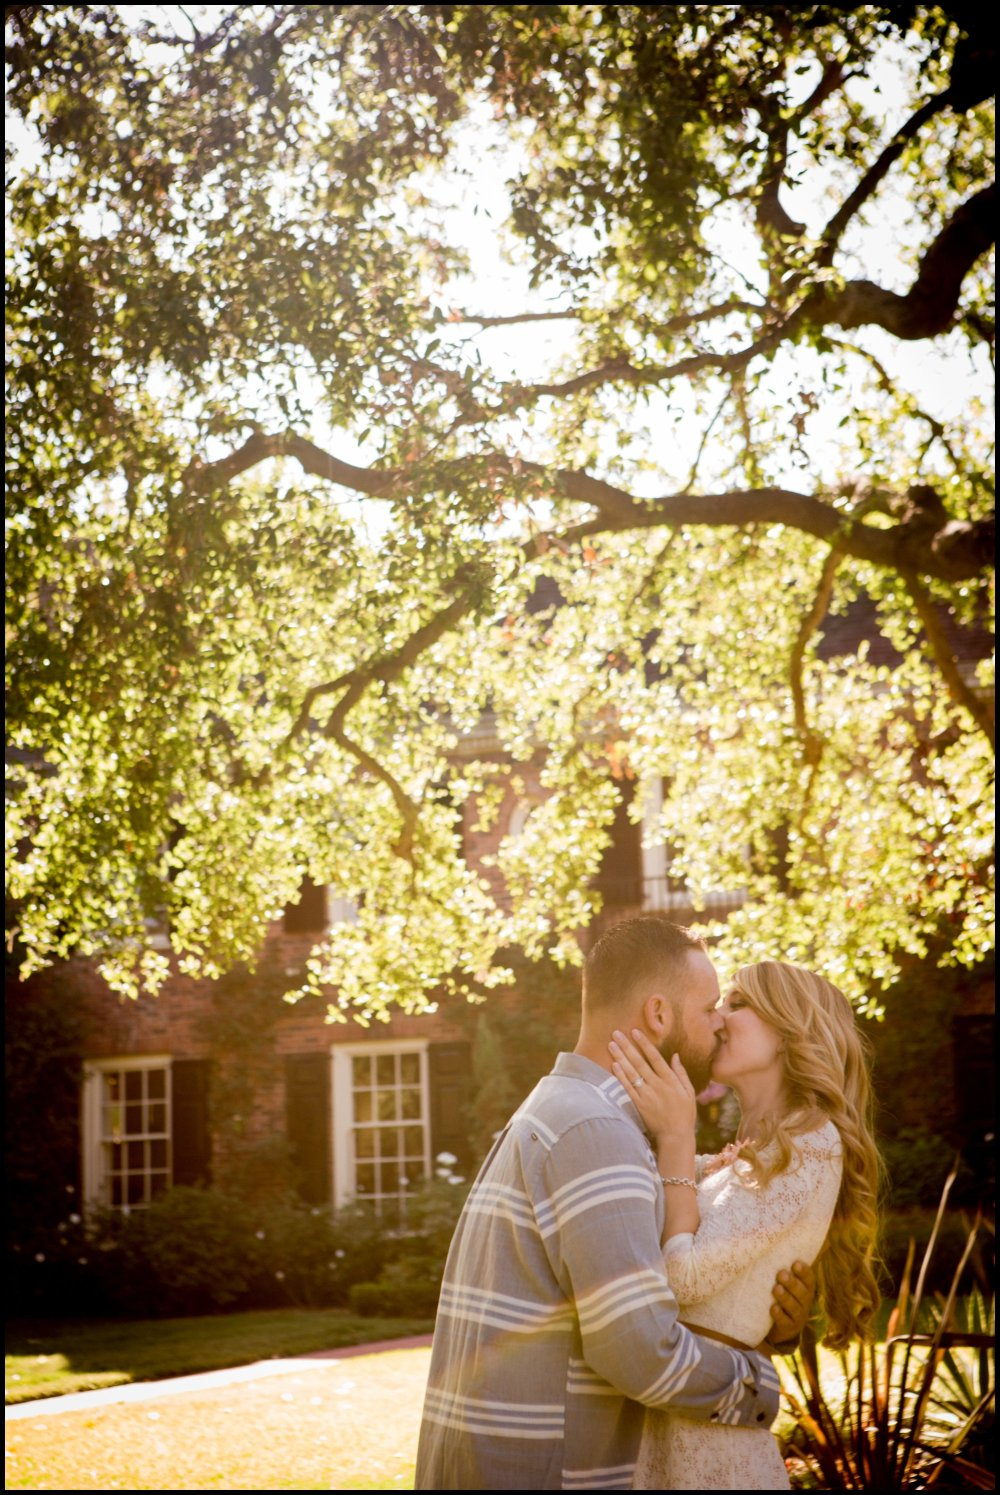 Lux_aeterna_photography_by_Cassia_Karin_jesse_peter_paul_wedding_day_pasadena_engagement_session_santa_anita_park-130.jpg